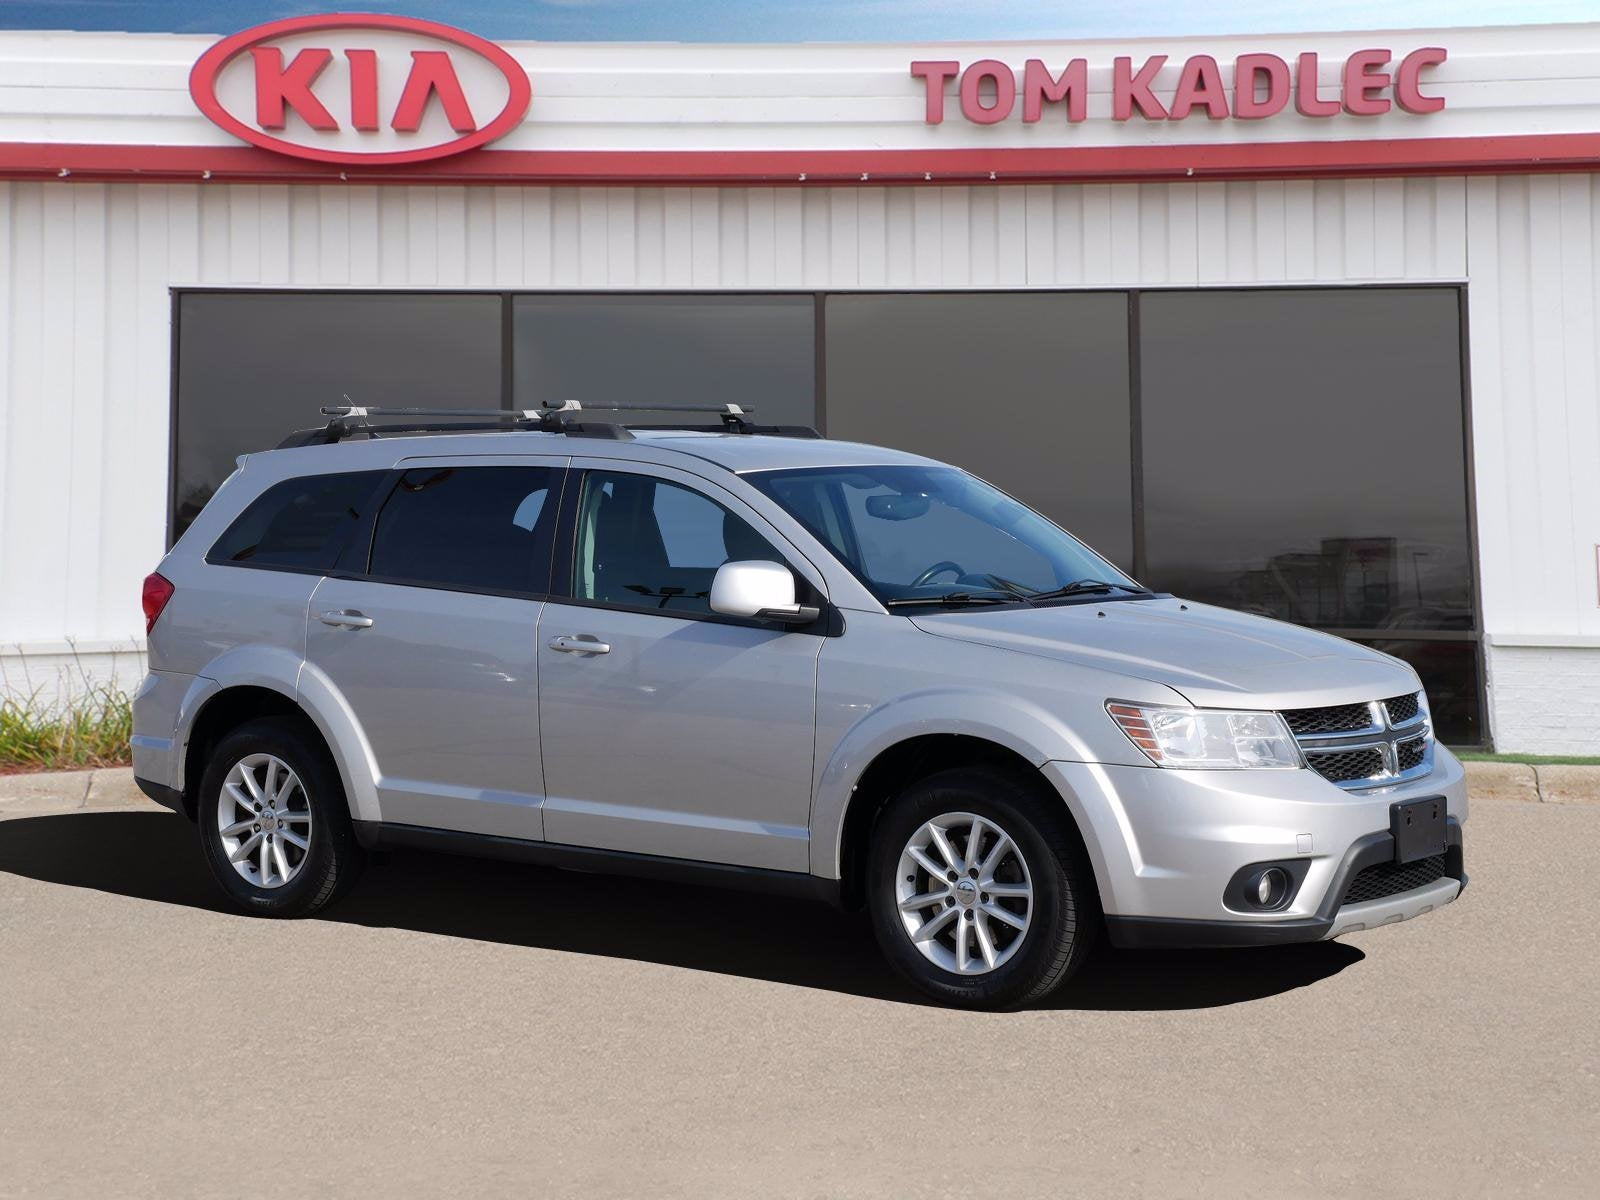 Used 2013 Dodge Journey SXT with VIN 3C4PDCBG6DT568289 for sale in Rochester, Minnesota